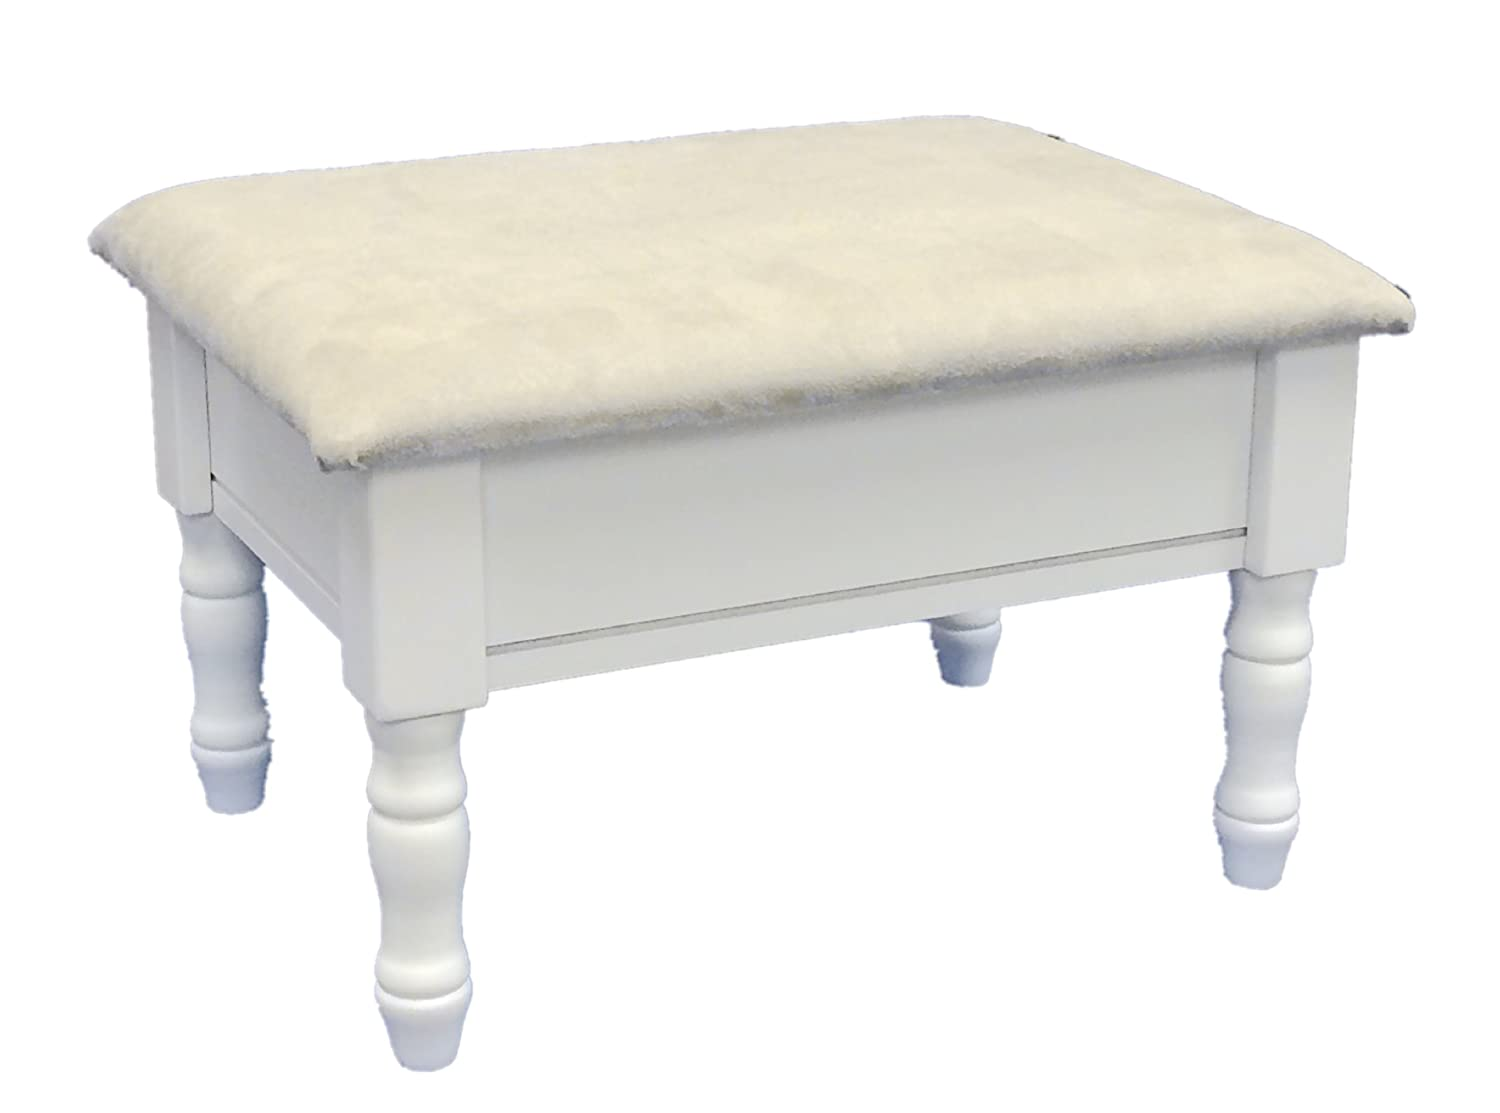 Frenchi Home Furnishing Footstool with Storage, White Finish with Dark Beige Cover H-51-WH